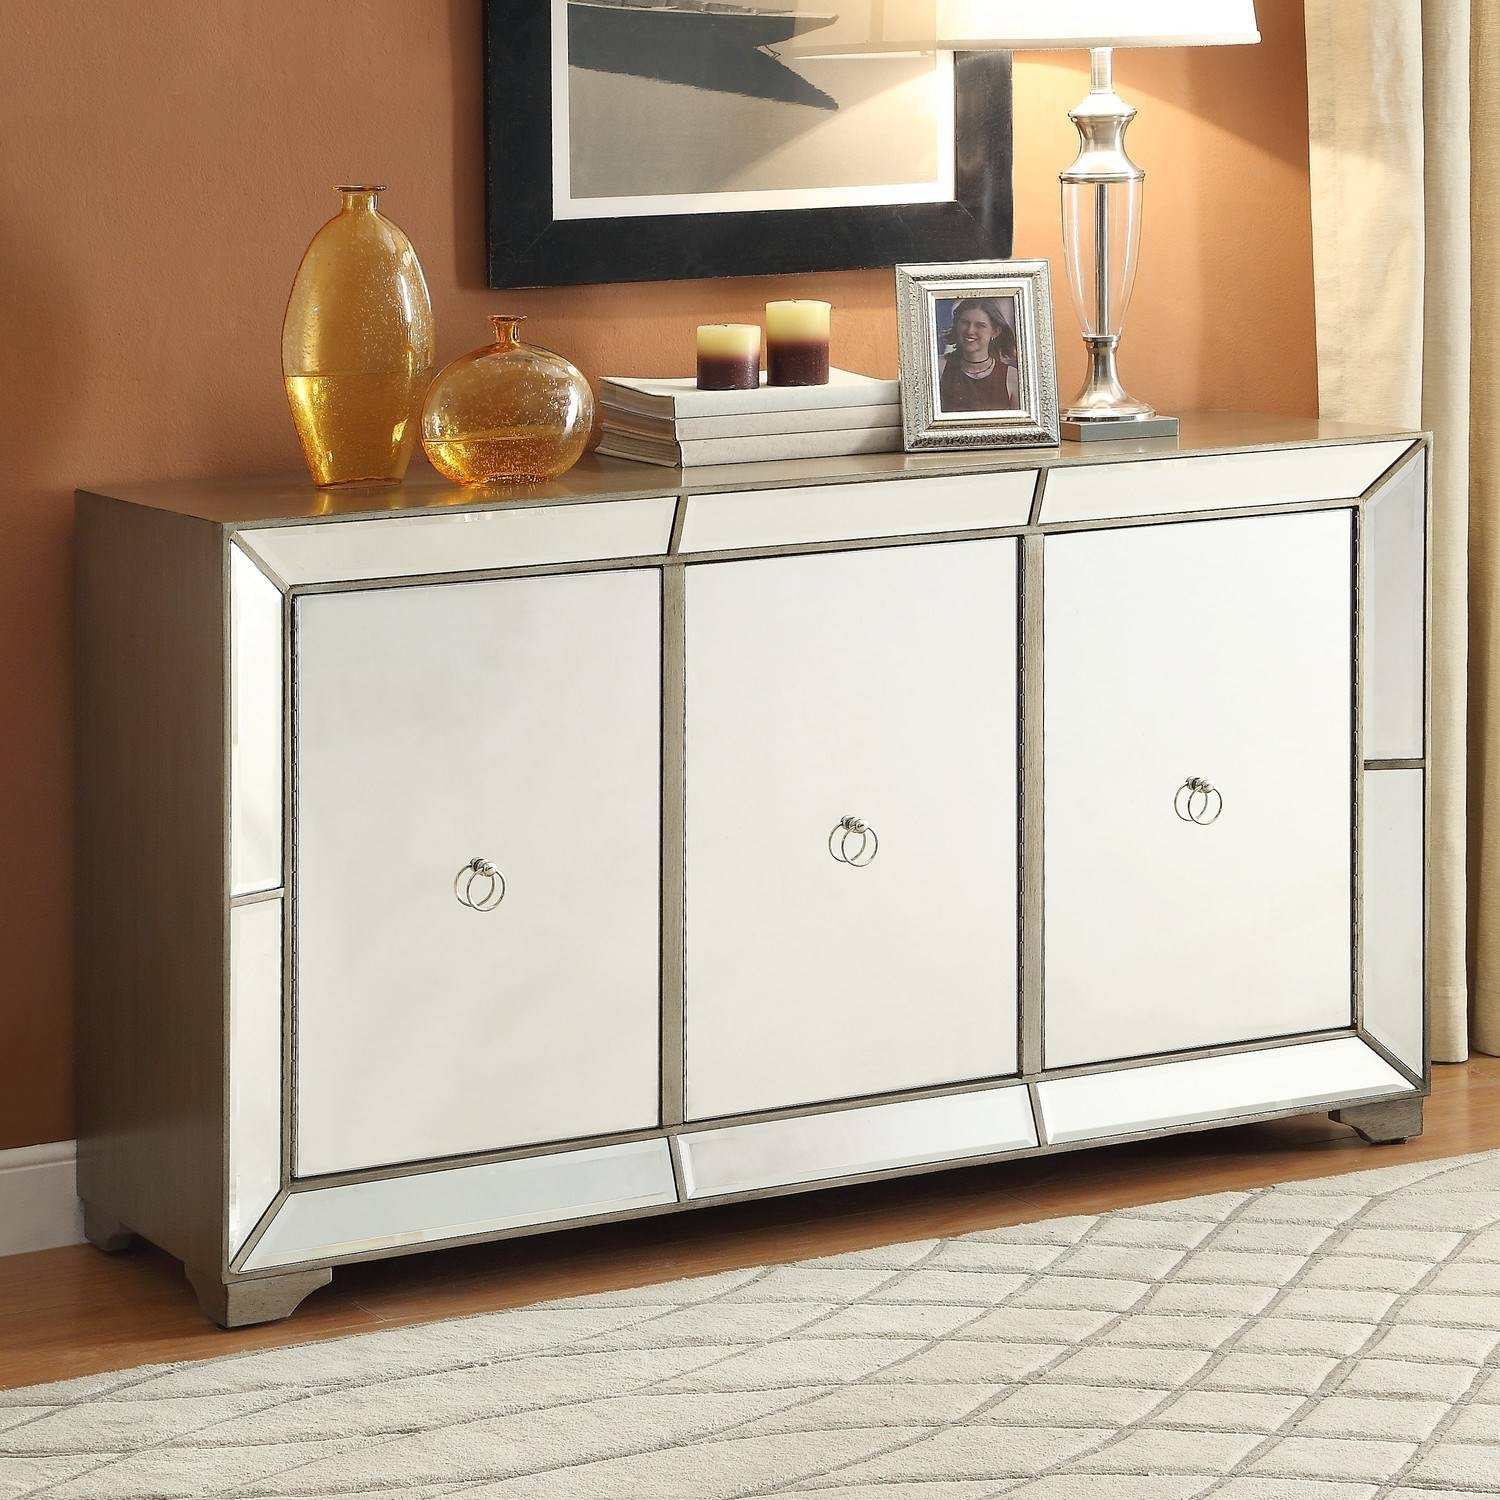 Powell Furniture 14Bo8083Cc Bombay Monterey Mirrored Sideboard In intended for Mirrored Sideboard Furniture (Image 11 of 30)